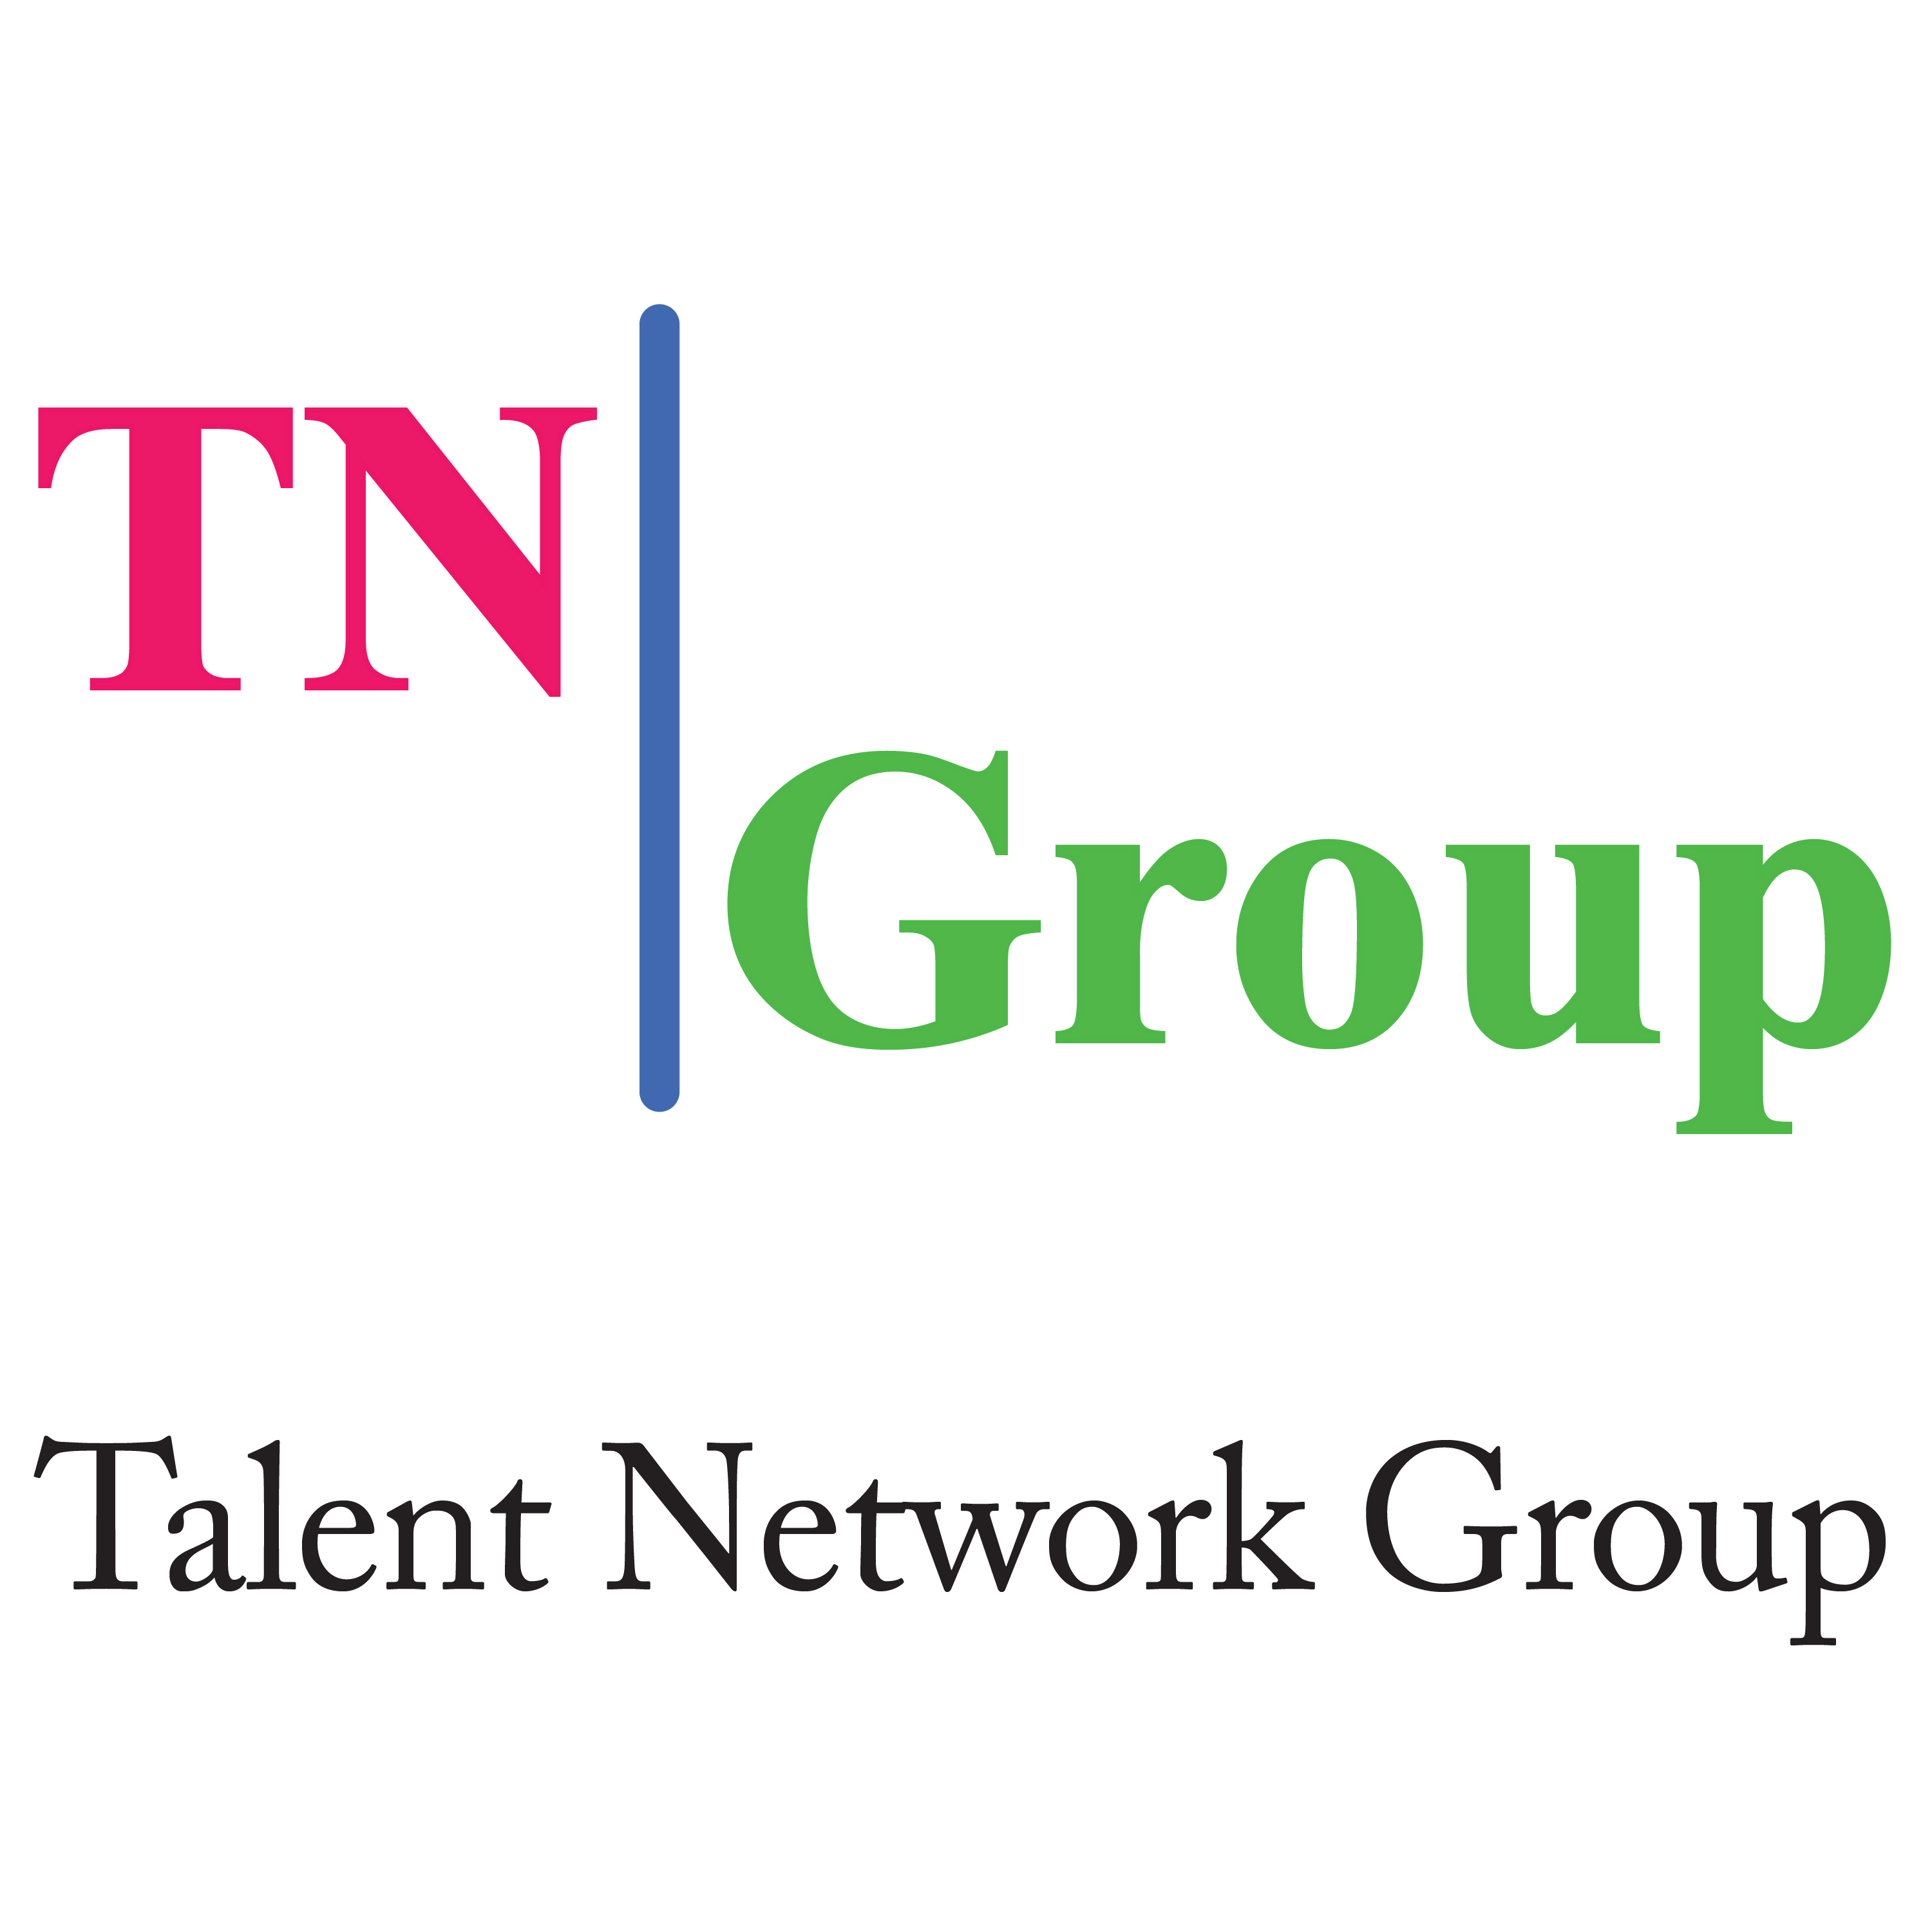 Talent Network Group